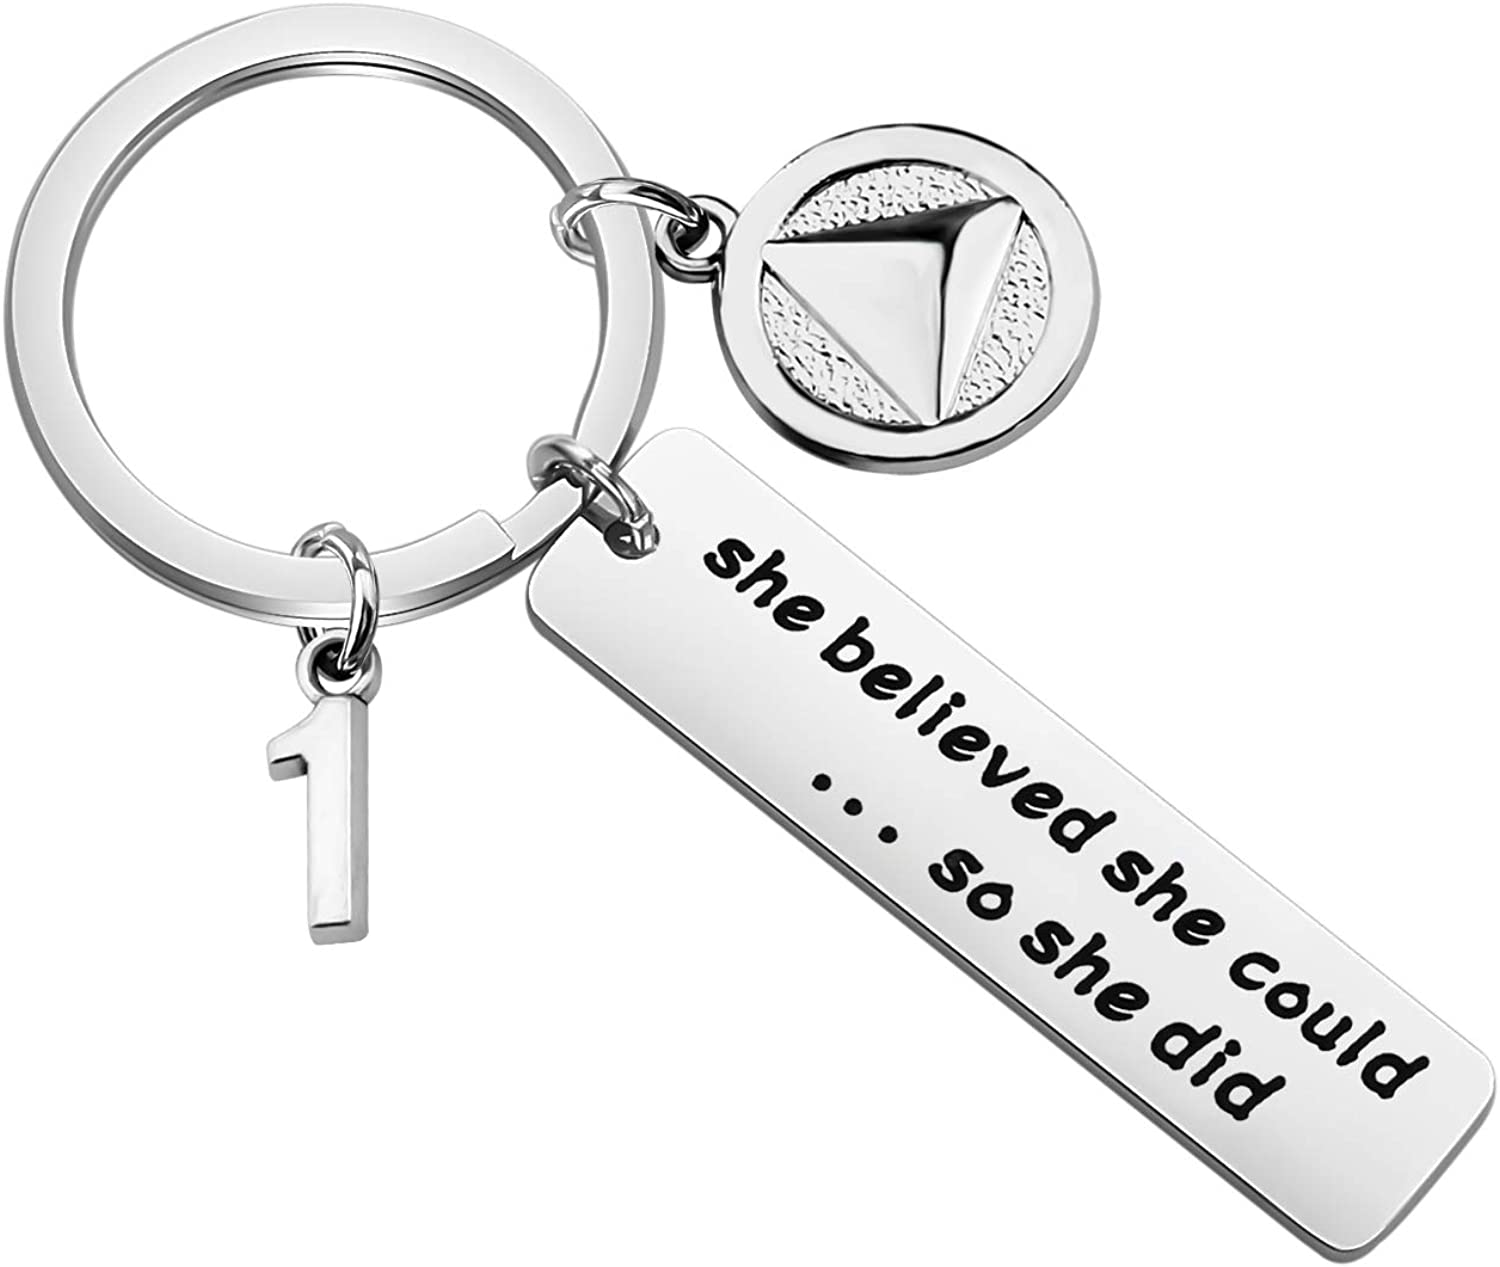 POTIY Sobriety Keychain Sober 5 Year Anniversary Gift Alcoholics Keychain She Believed She Could So She Did Sobriety Gifts AA Recovery Gifts Recovery Symbol Gift